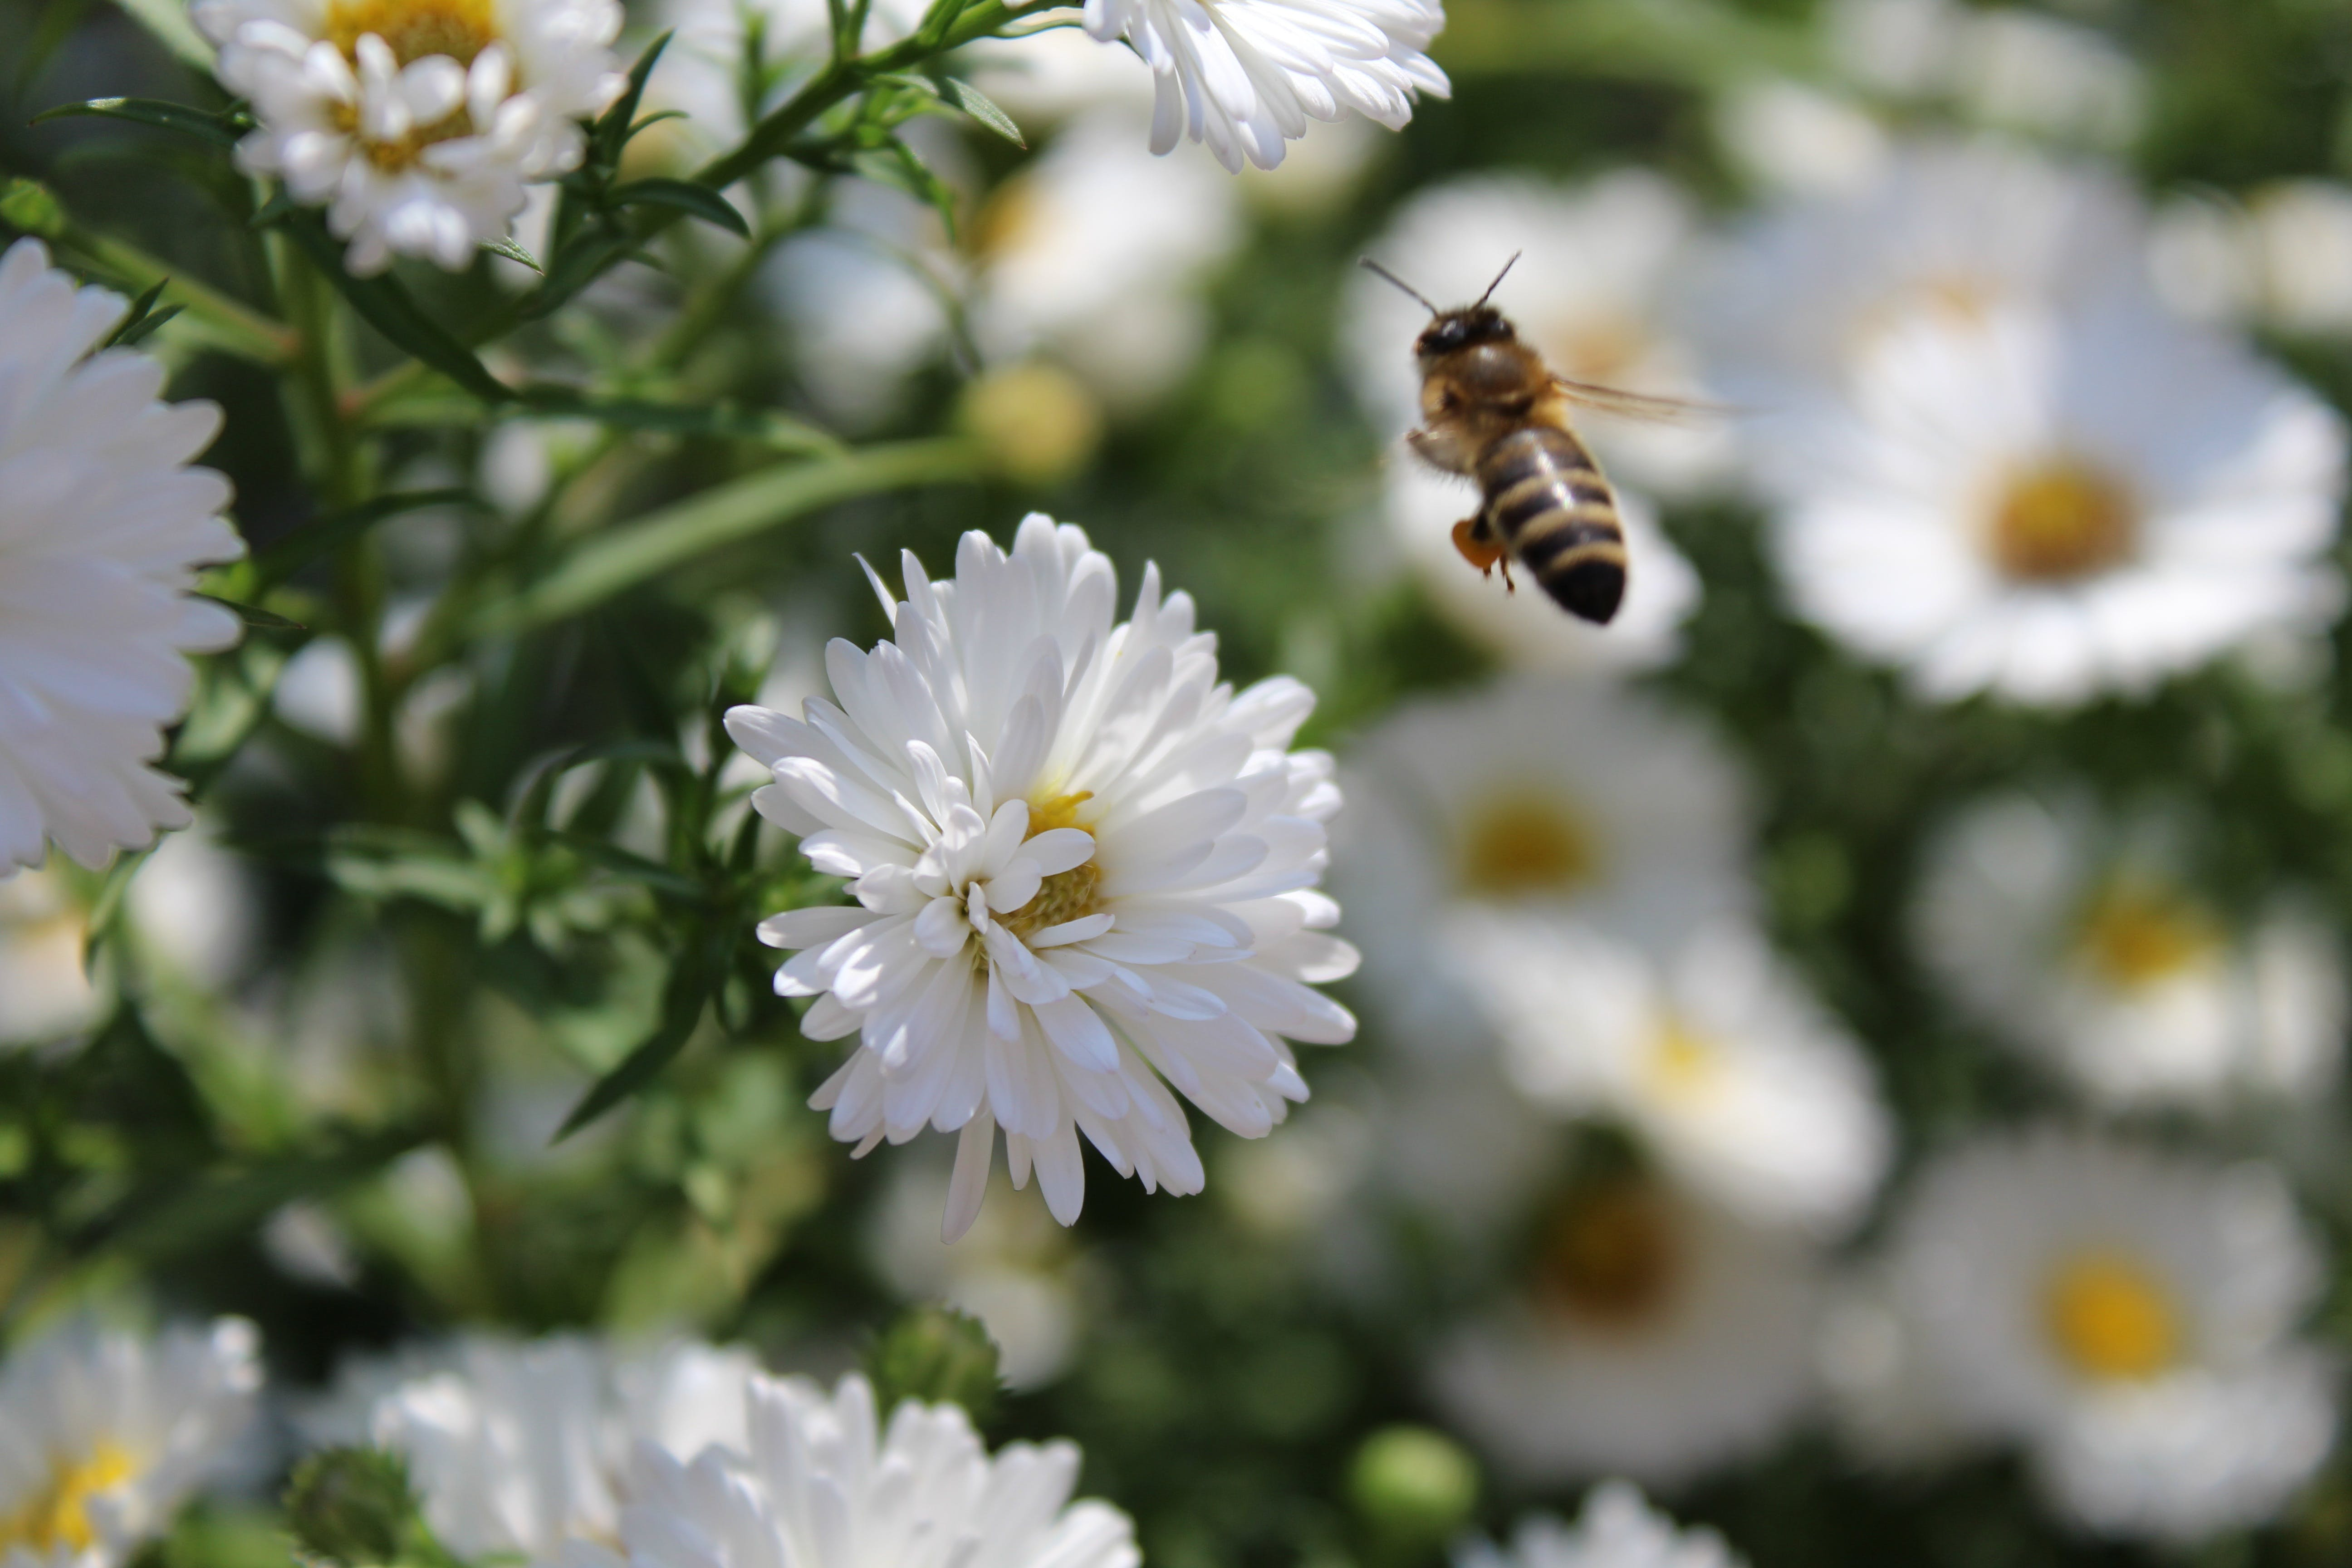 Honey Bee Hovering Near White Aster Flower in Selective-focus Photography